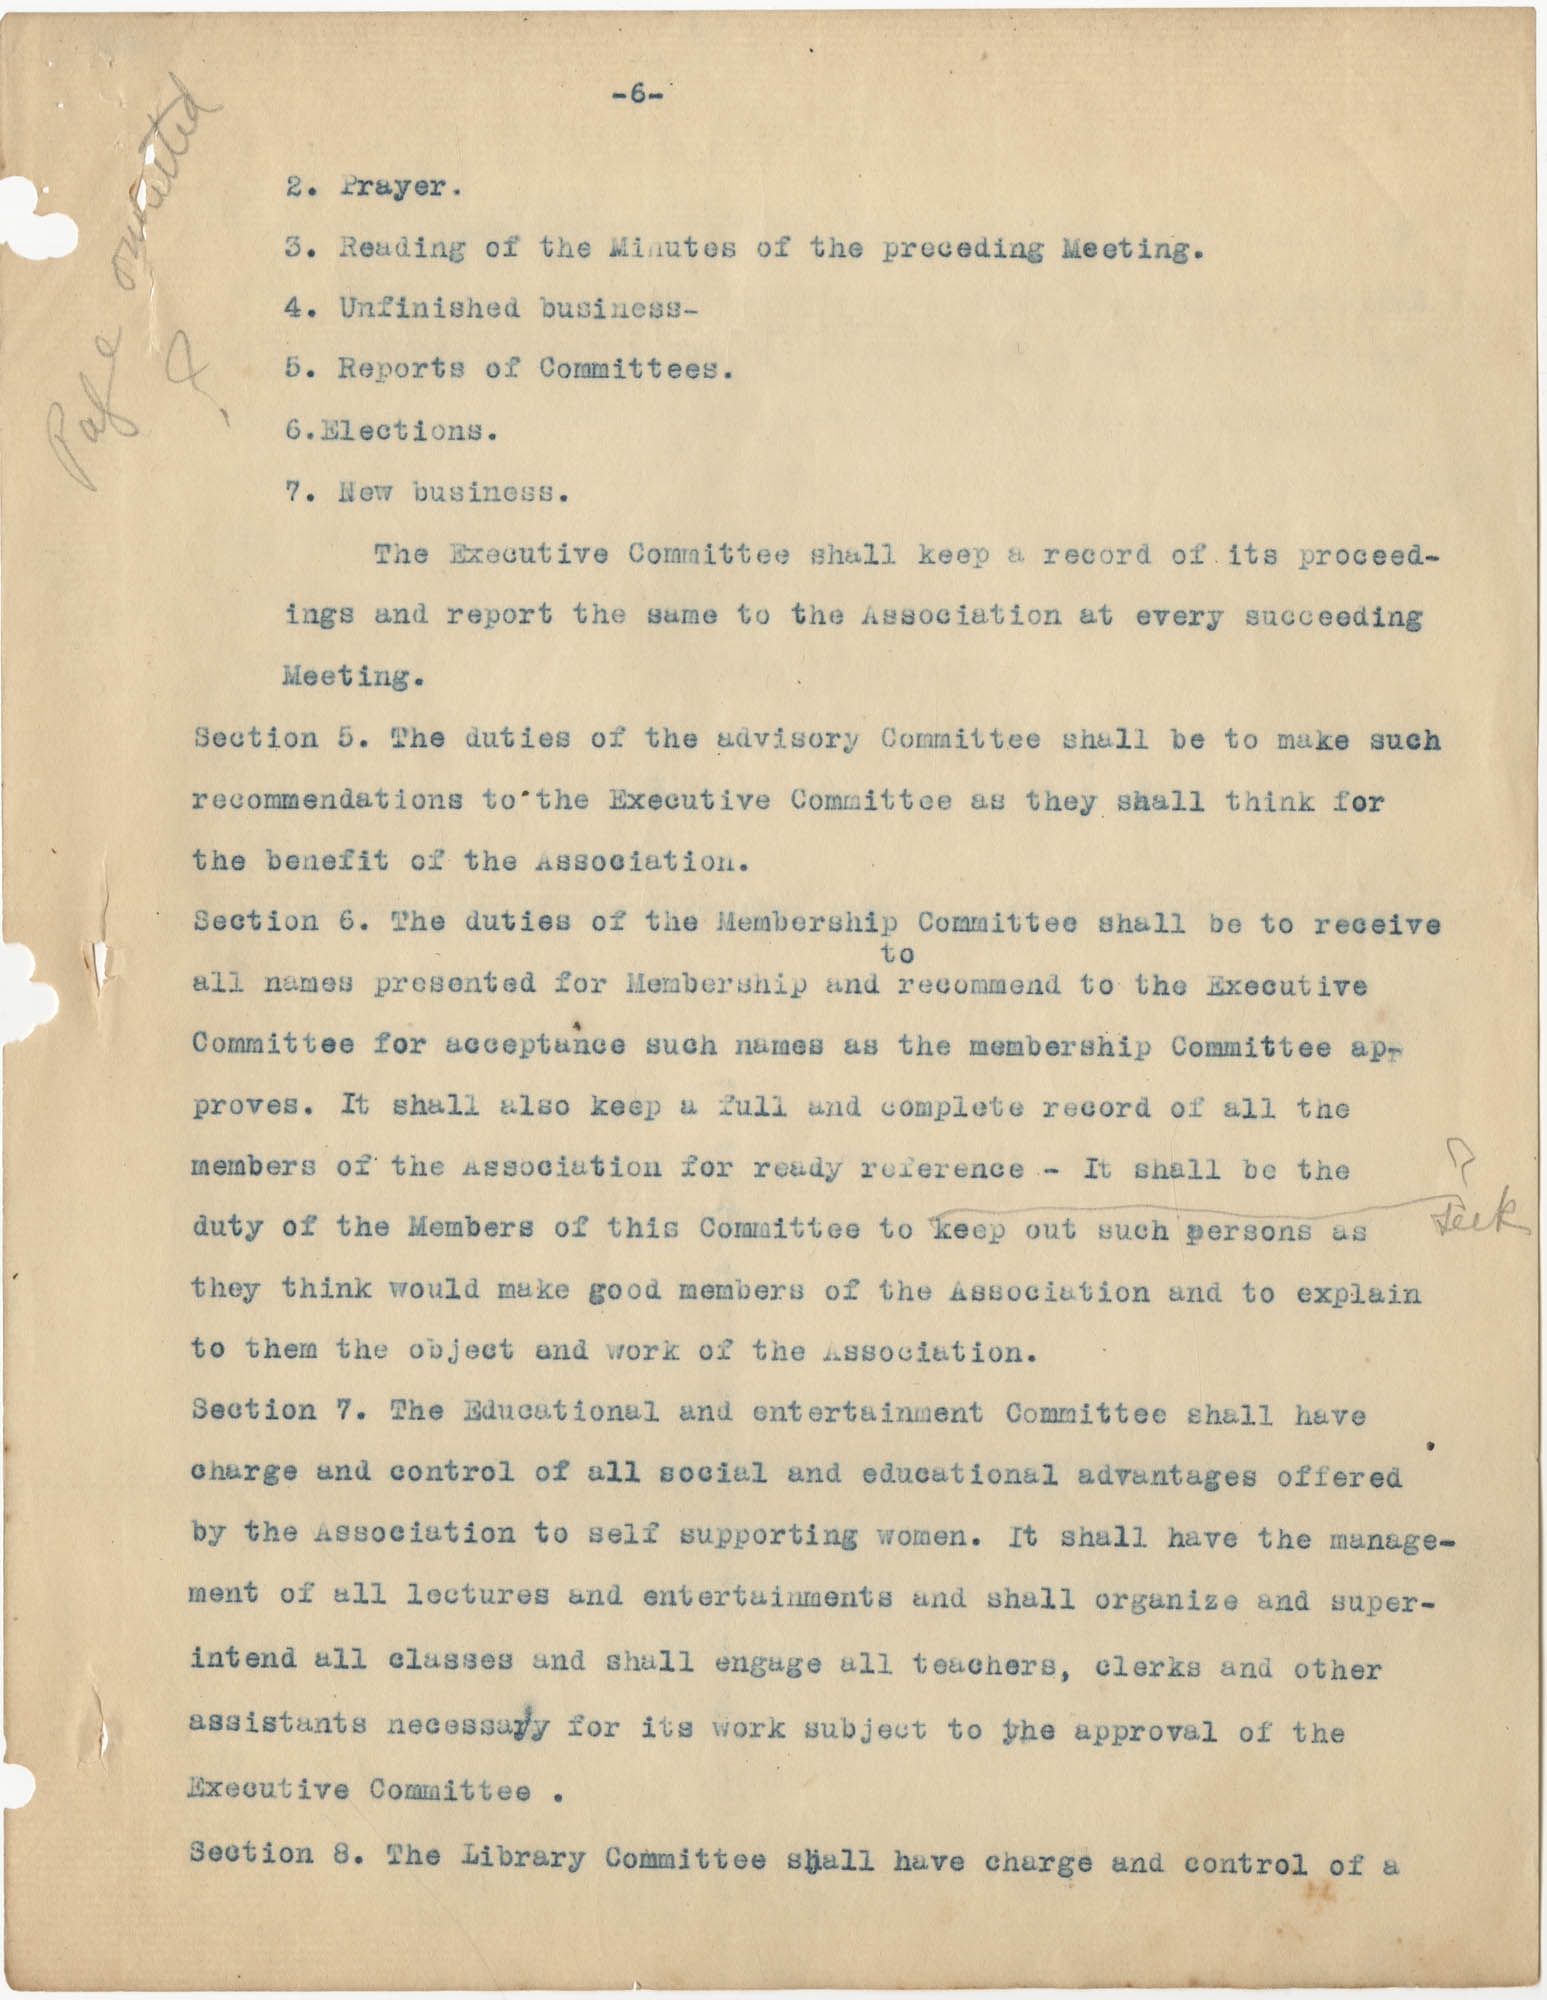 Minutes to the Coming Street Y.W.C.A. Meeting, January 23, 1911, Page 6